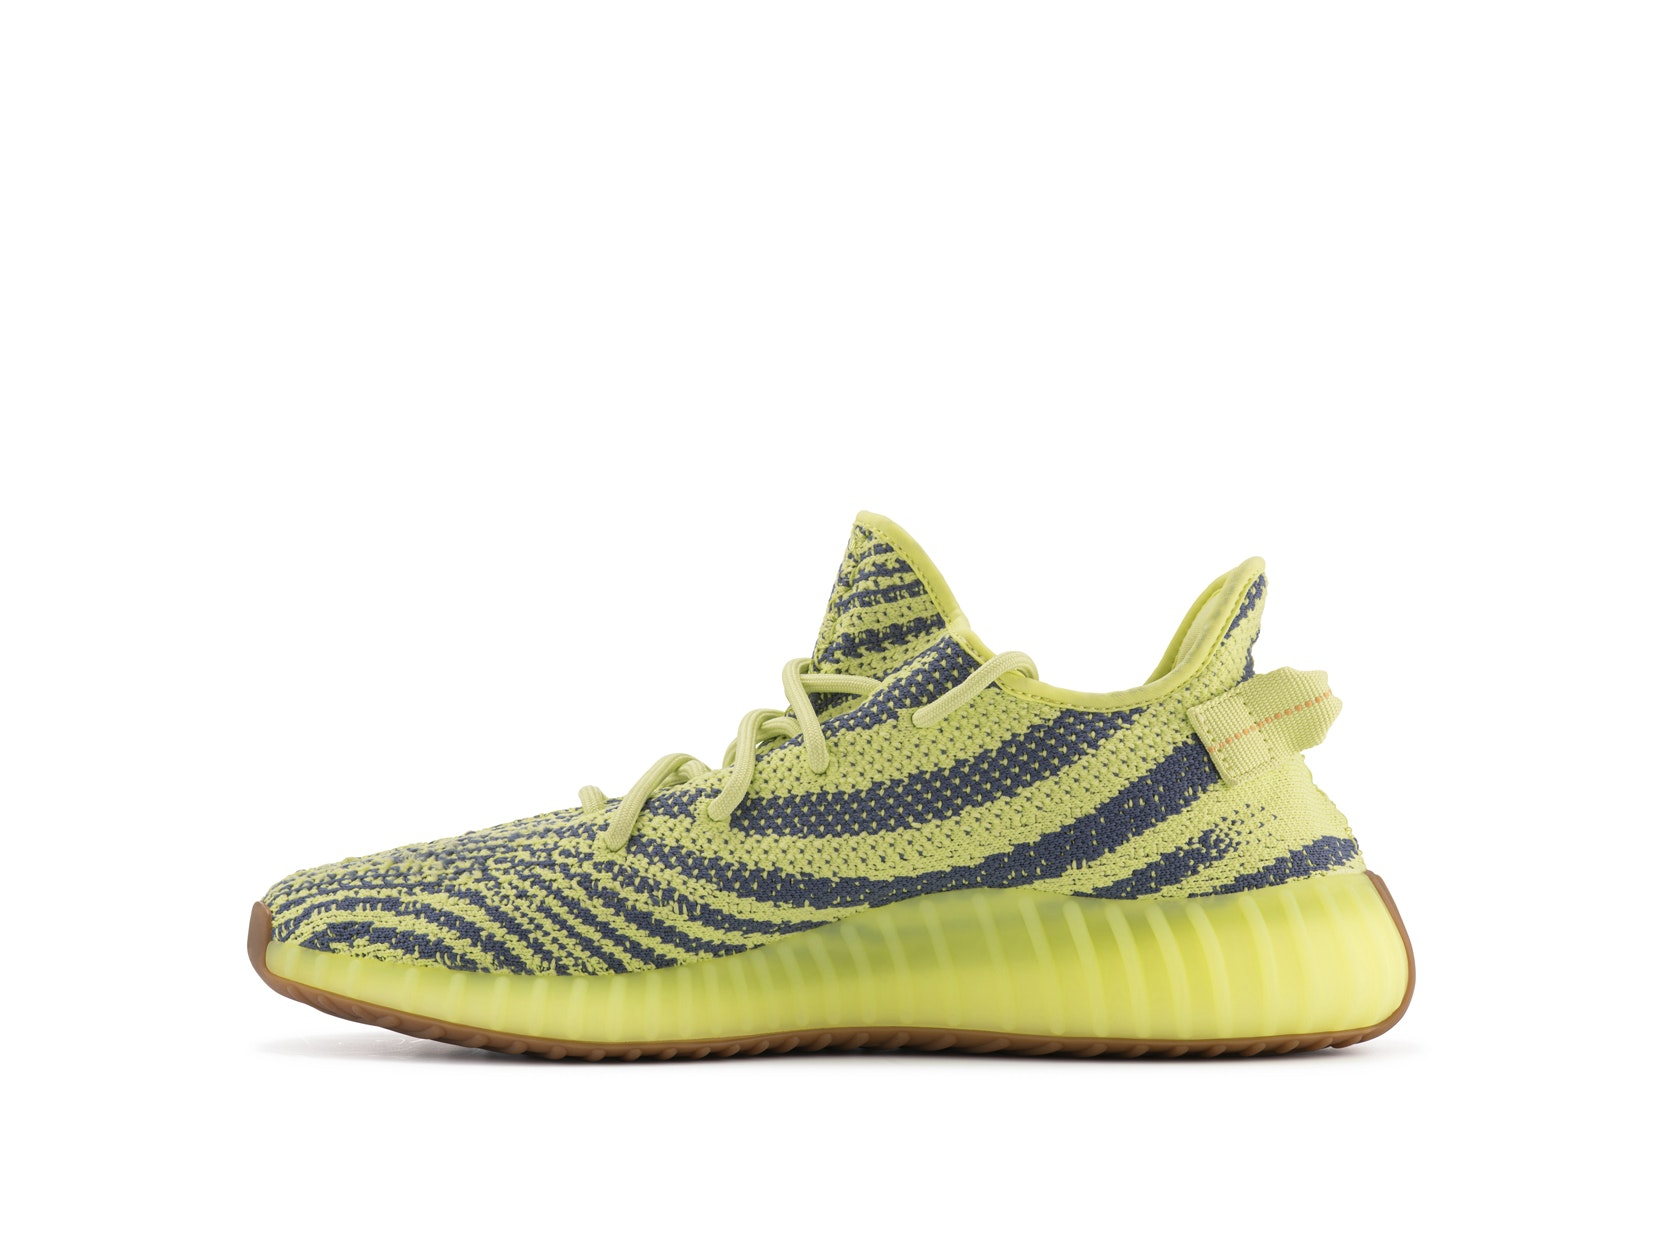 94dc3f481 Yeezy Boost 350 V2 Semi Frozen Yellow. 100% AuthenticAvg Delivery Time  1-2  days. Adidas   B37572